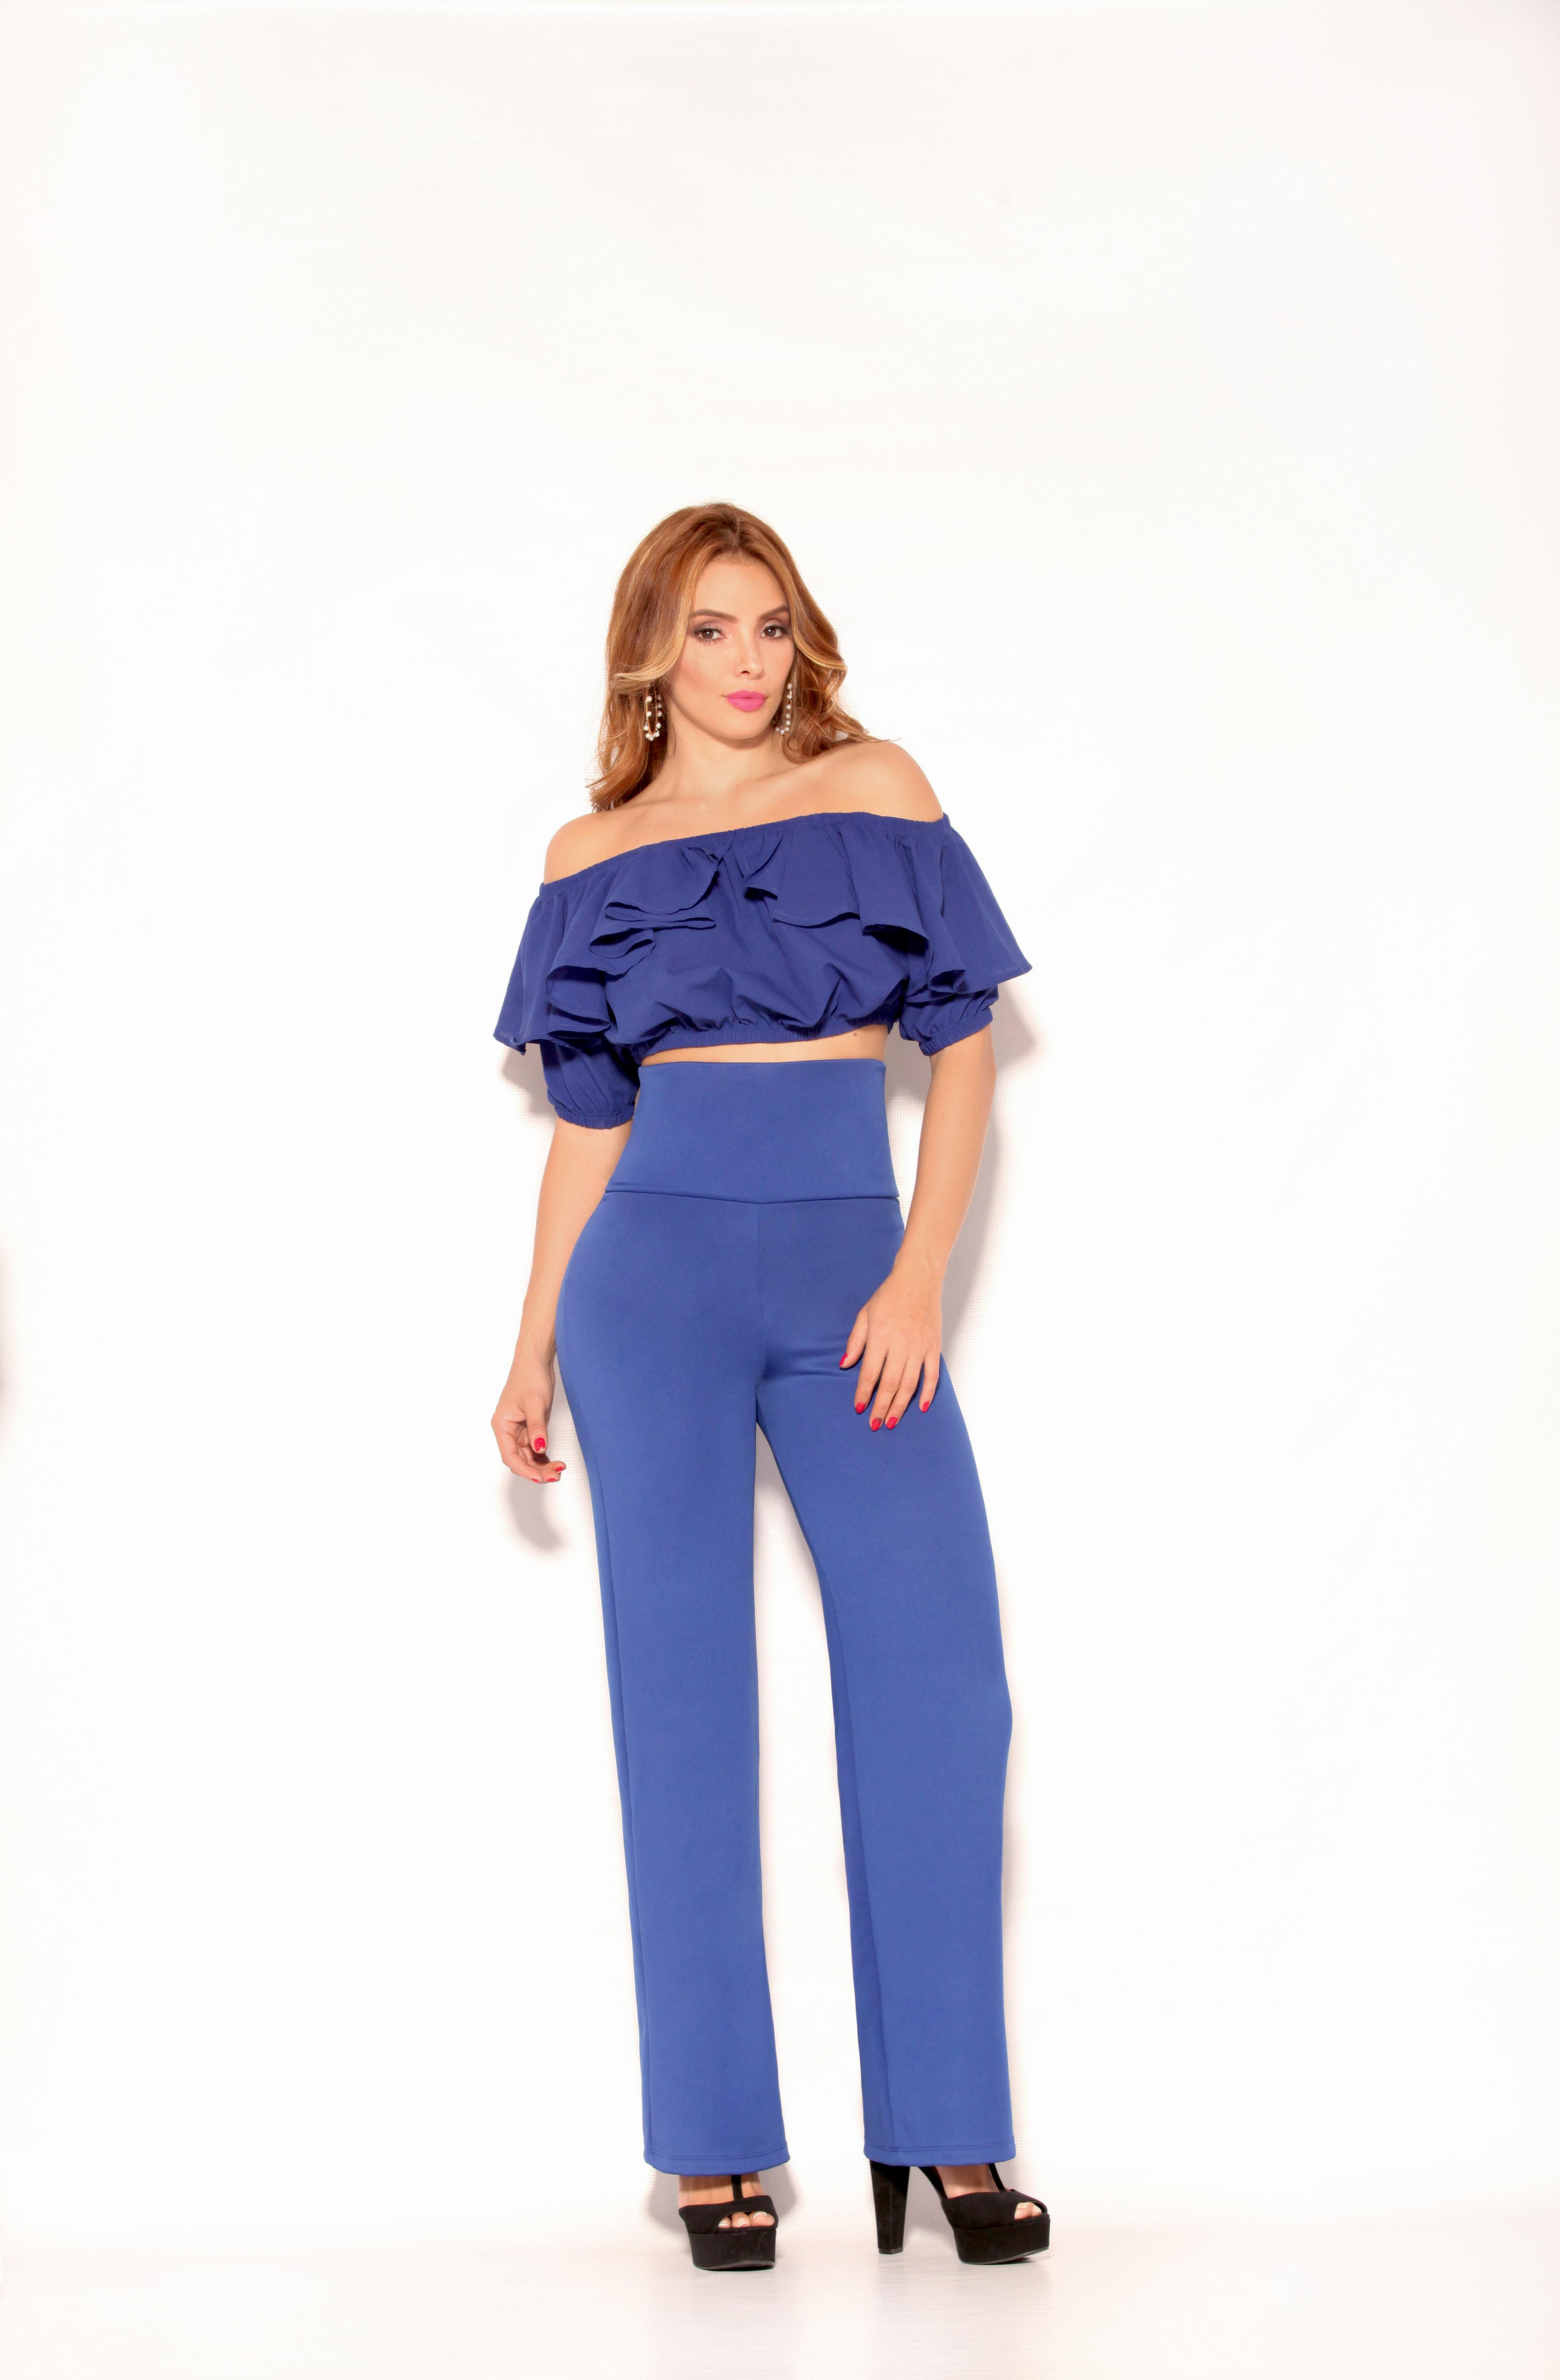 Colombian Pant and Blouse Set, with abdomen control Waistband and Modern Layered Blouse